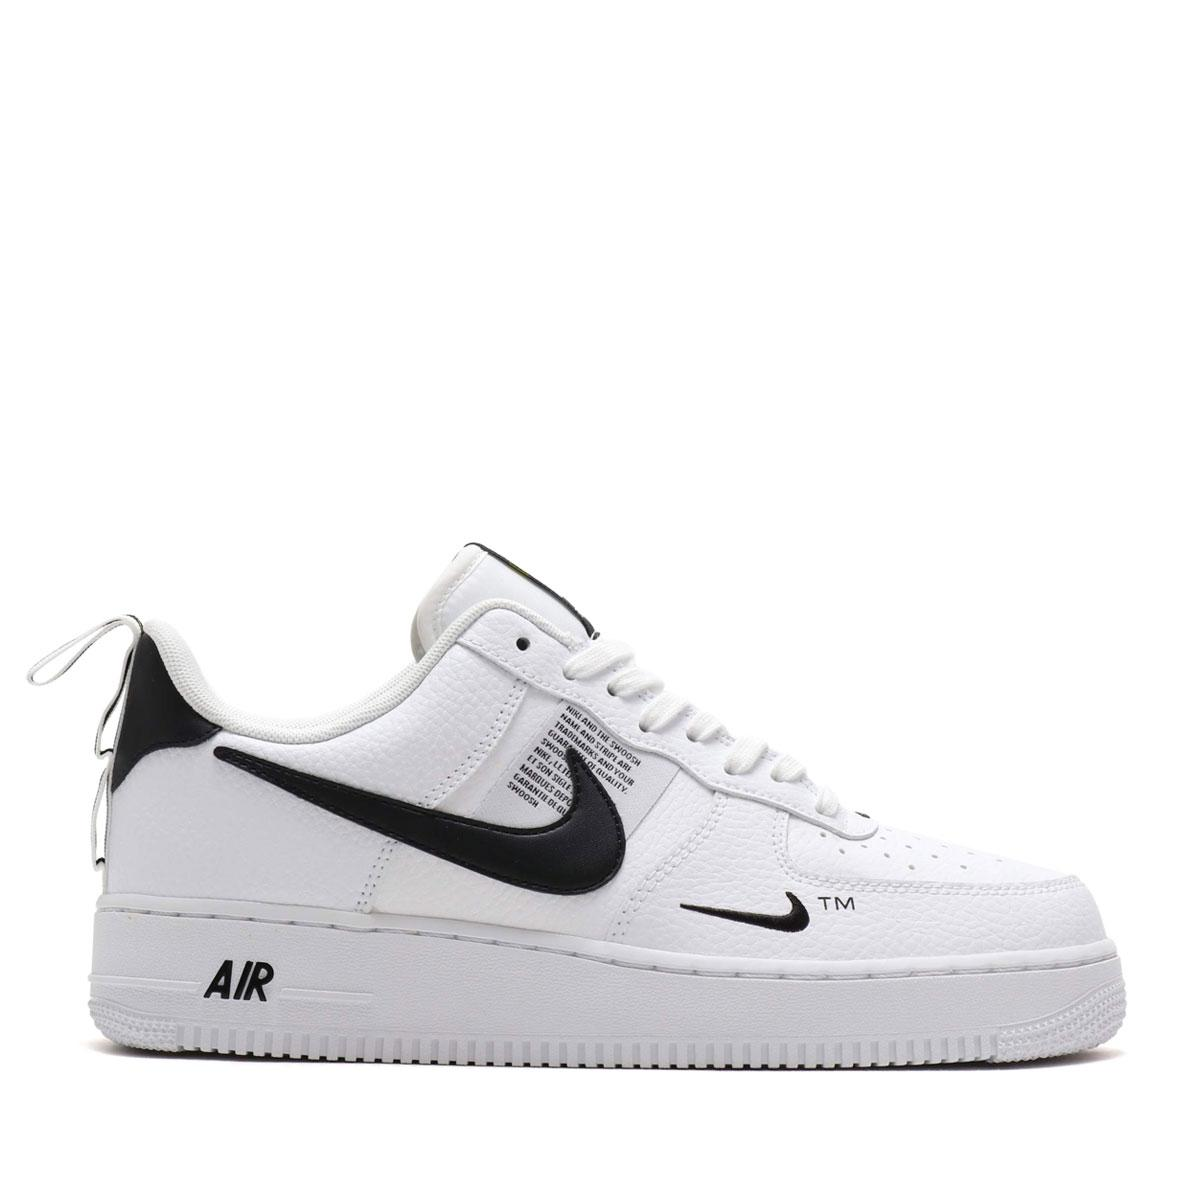 7c23fe4c Кроссовки Nike Air Force 1 LV8 Utility Off-White